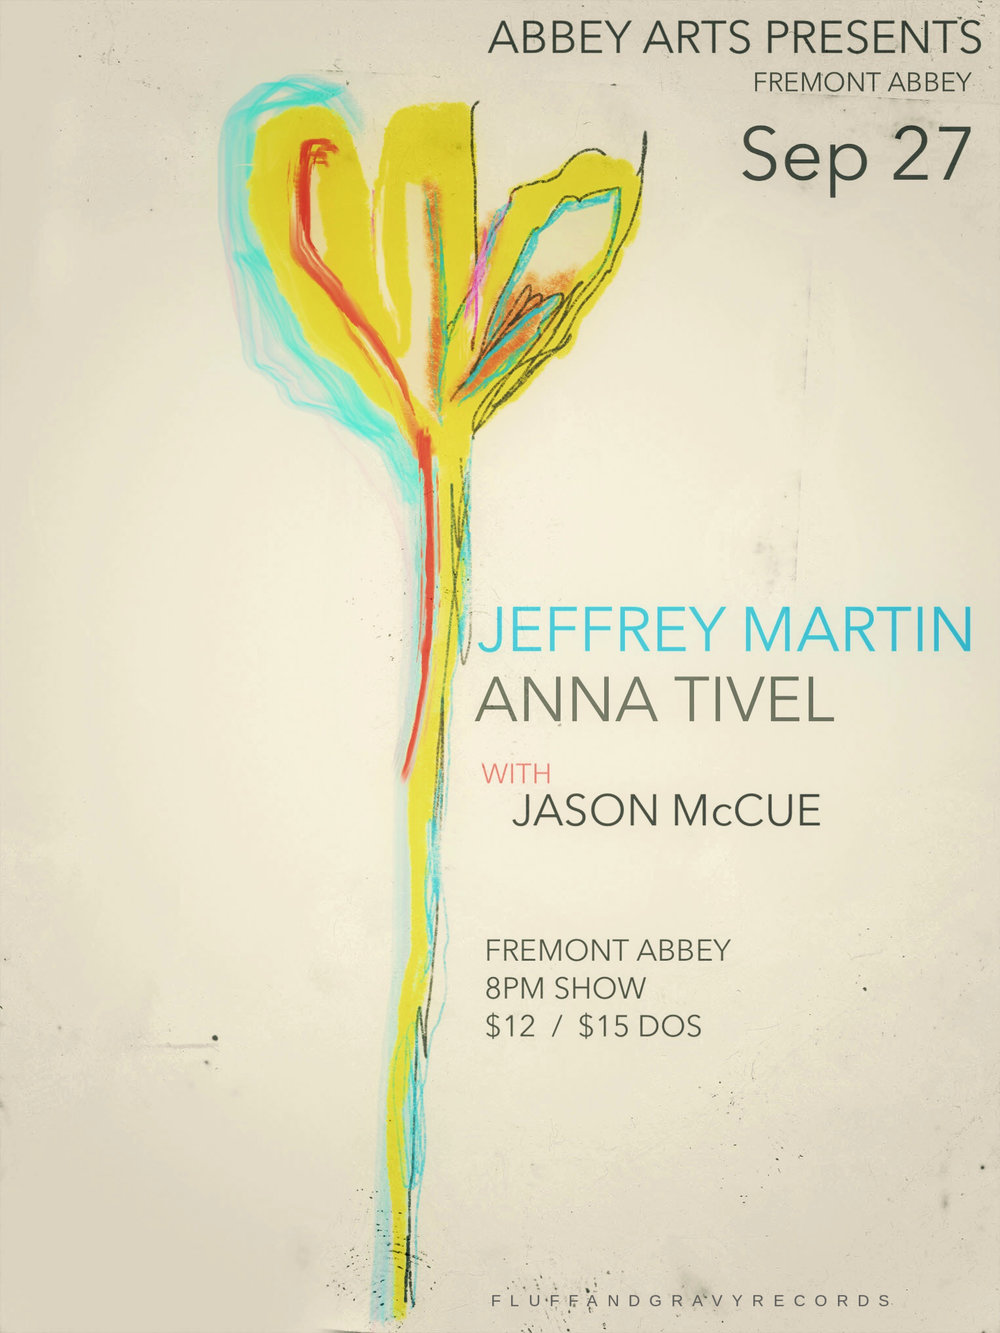 seattle-fremont-show-september-redone.jpeg